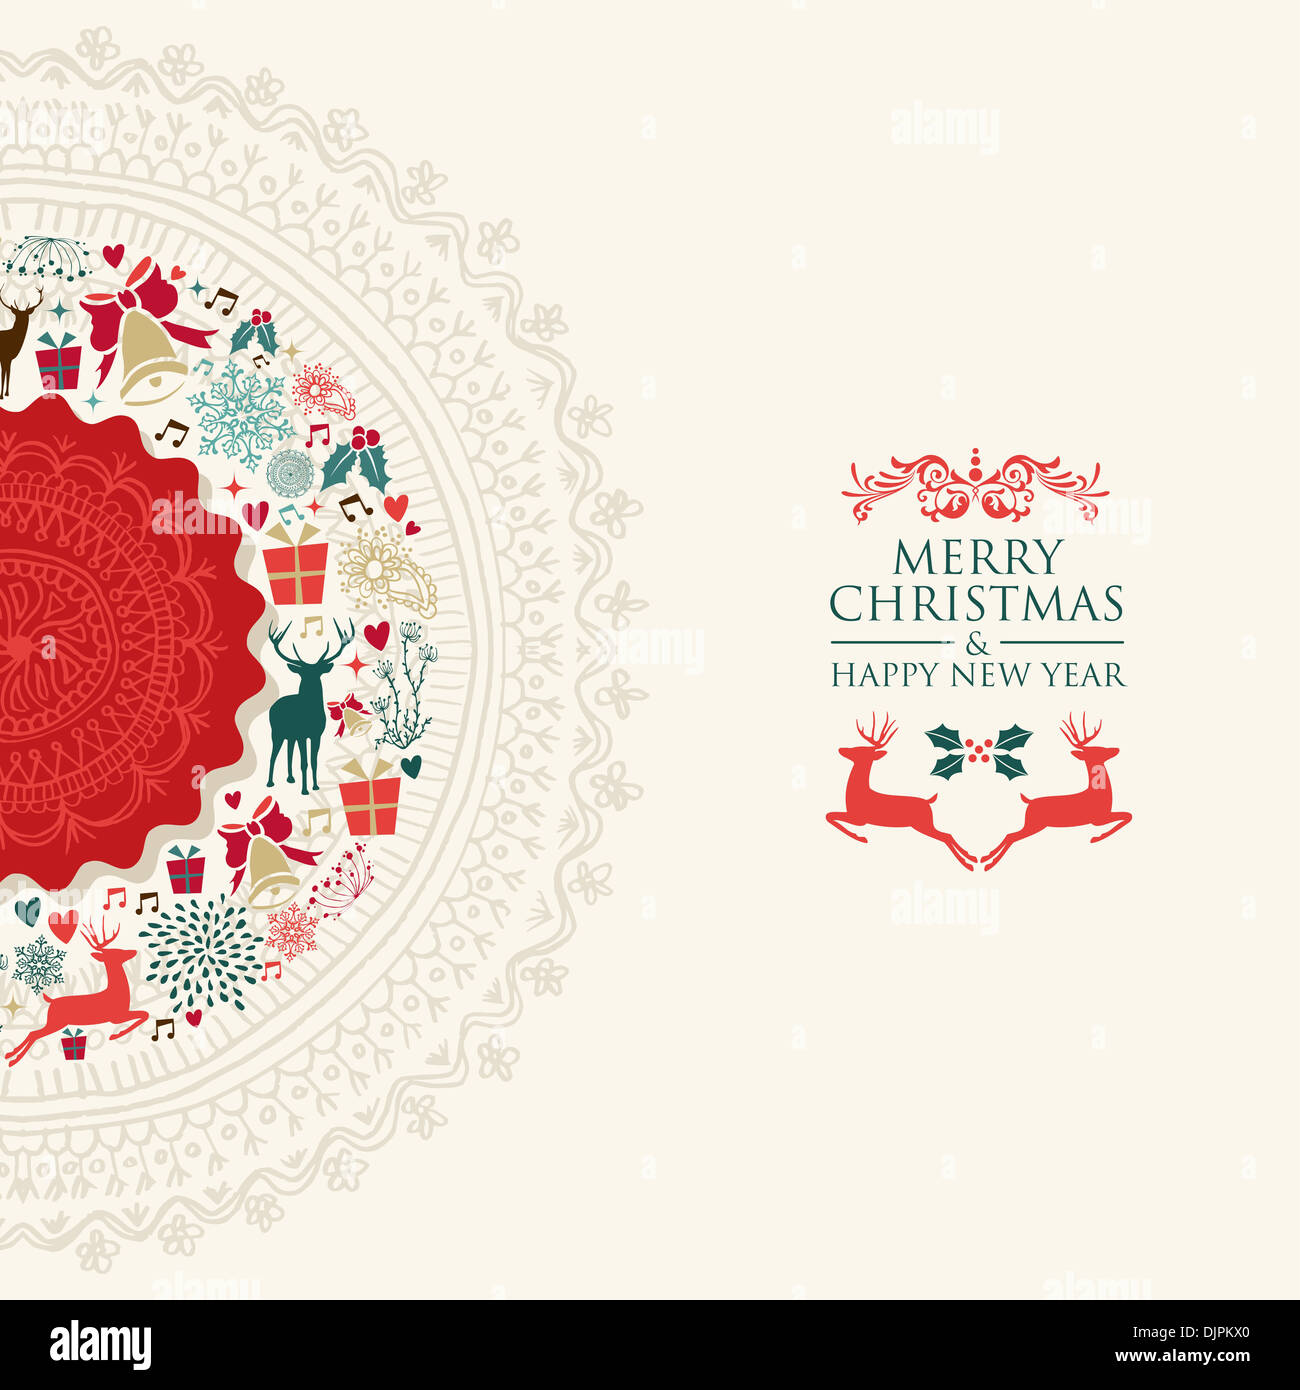 merry christmas and happy new year greeting card eps10 vector file organized in layers for easy editing